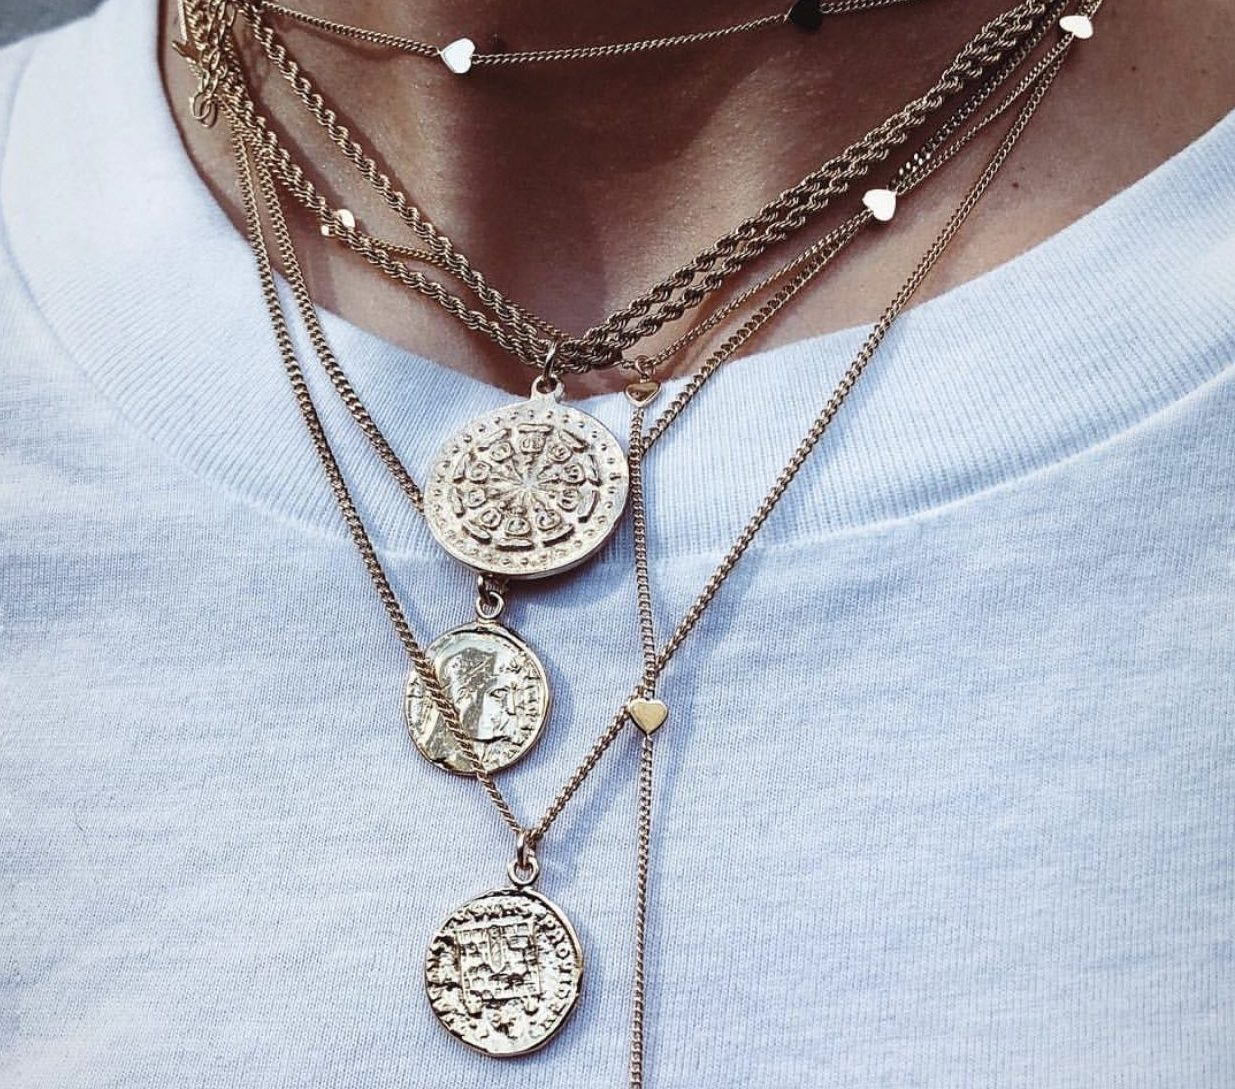 antoninus roman coin and listing snake il necklace ancient genuine a blue with sky topaz connector bezel stepped fullxfull pius chain in